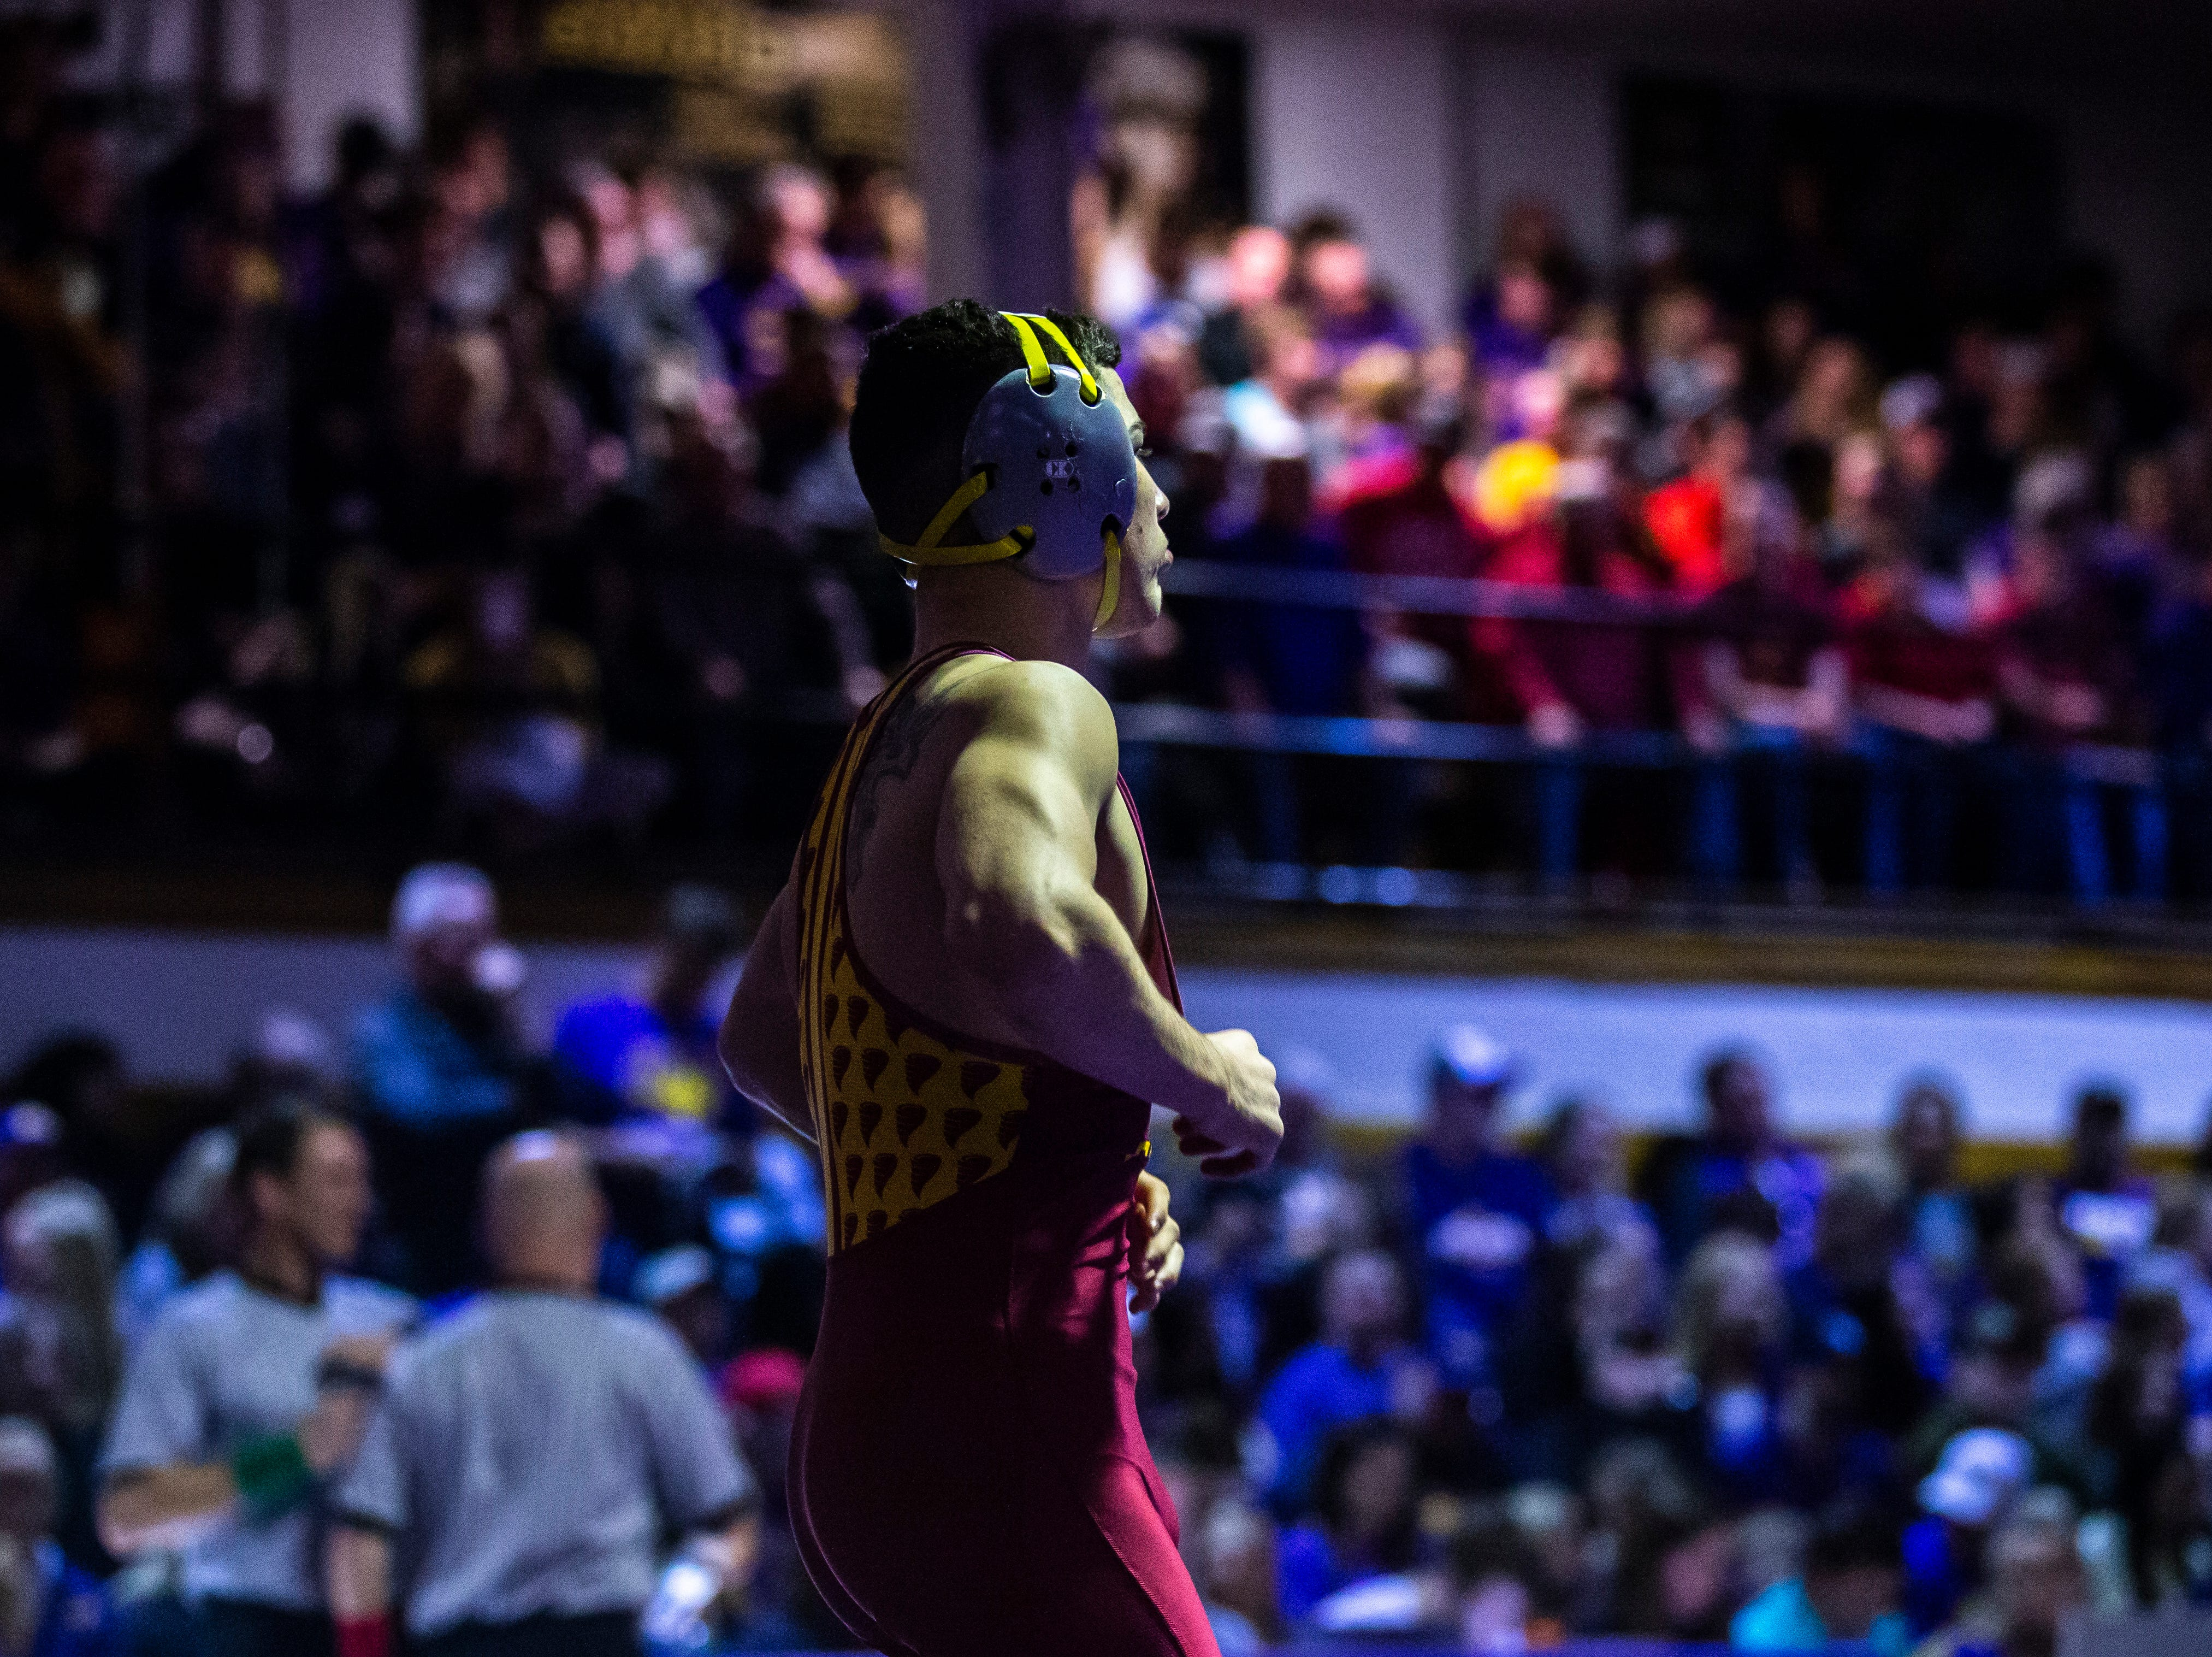 Iowa State's Austin Gomez is introduced before his match at 133 during a NCAA Big 12 wrestling dual on Thursday, Feb. 21, 2019 at the West Gymnasium in Cedar Falls, Iowa.